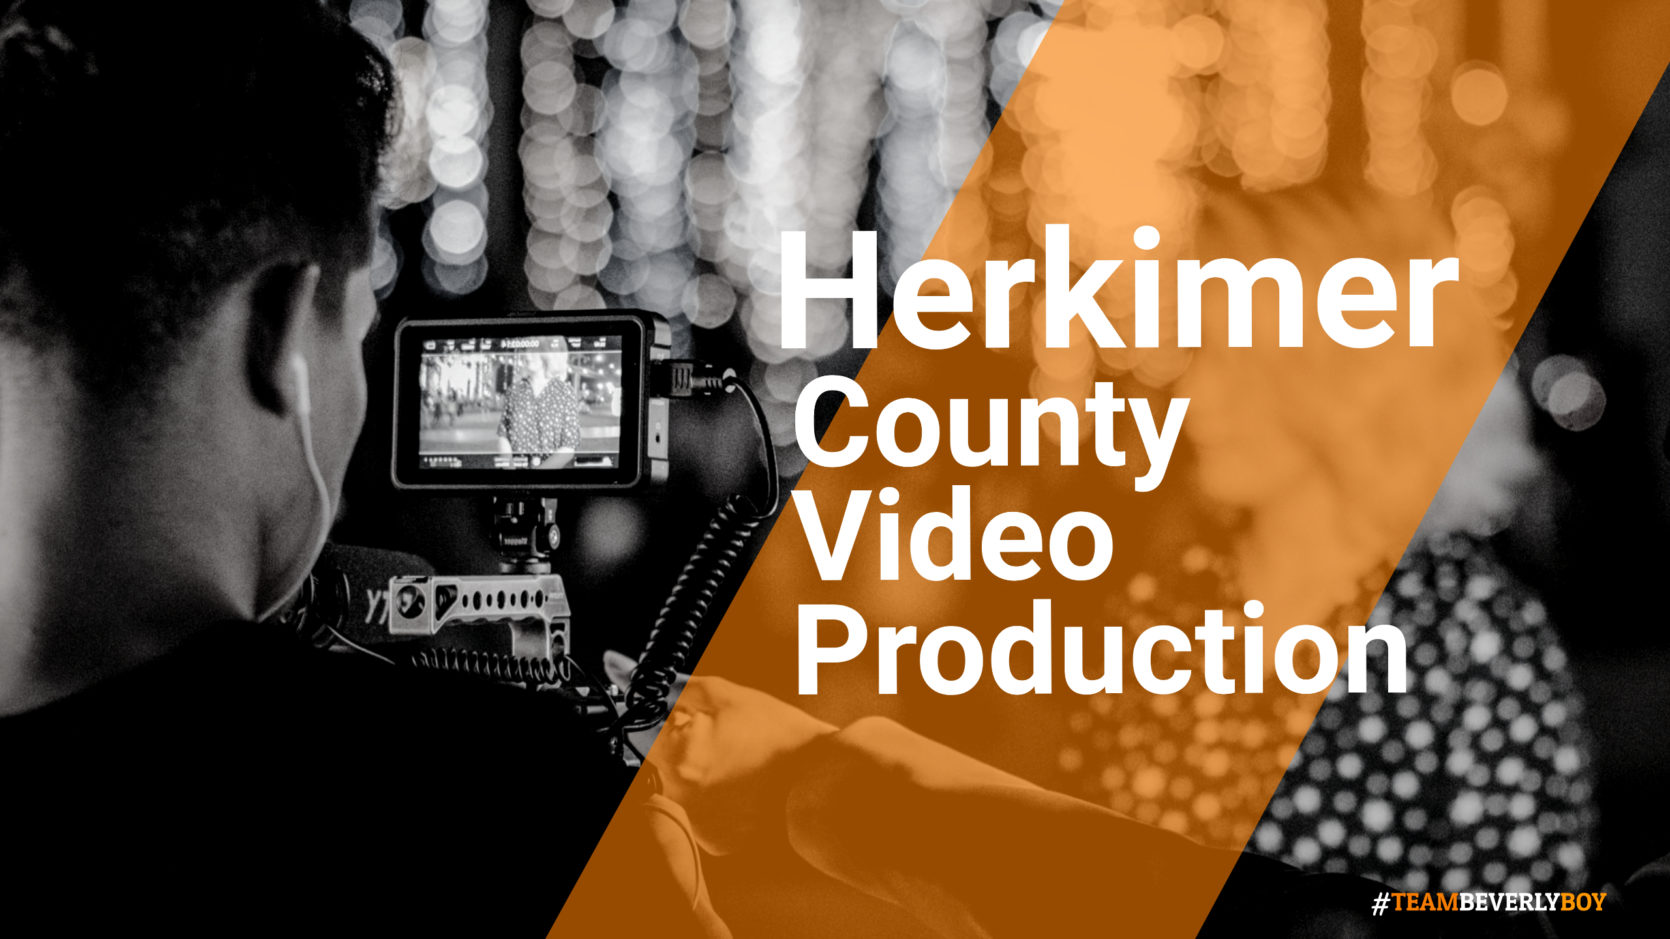 Herkimer County Video Production